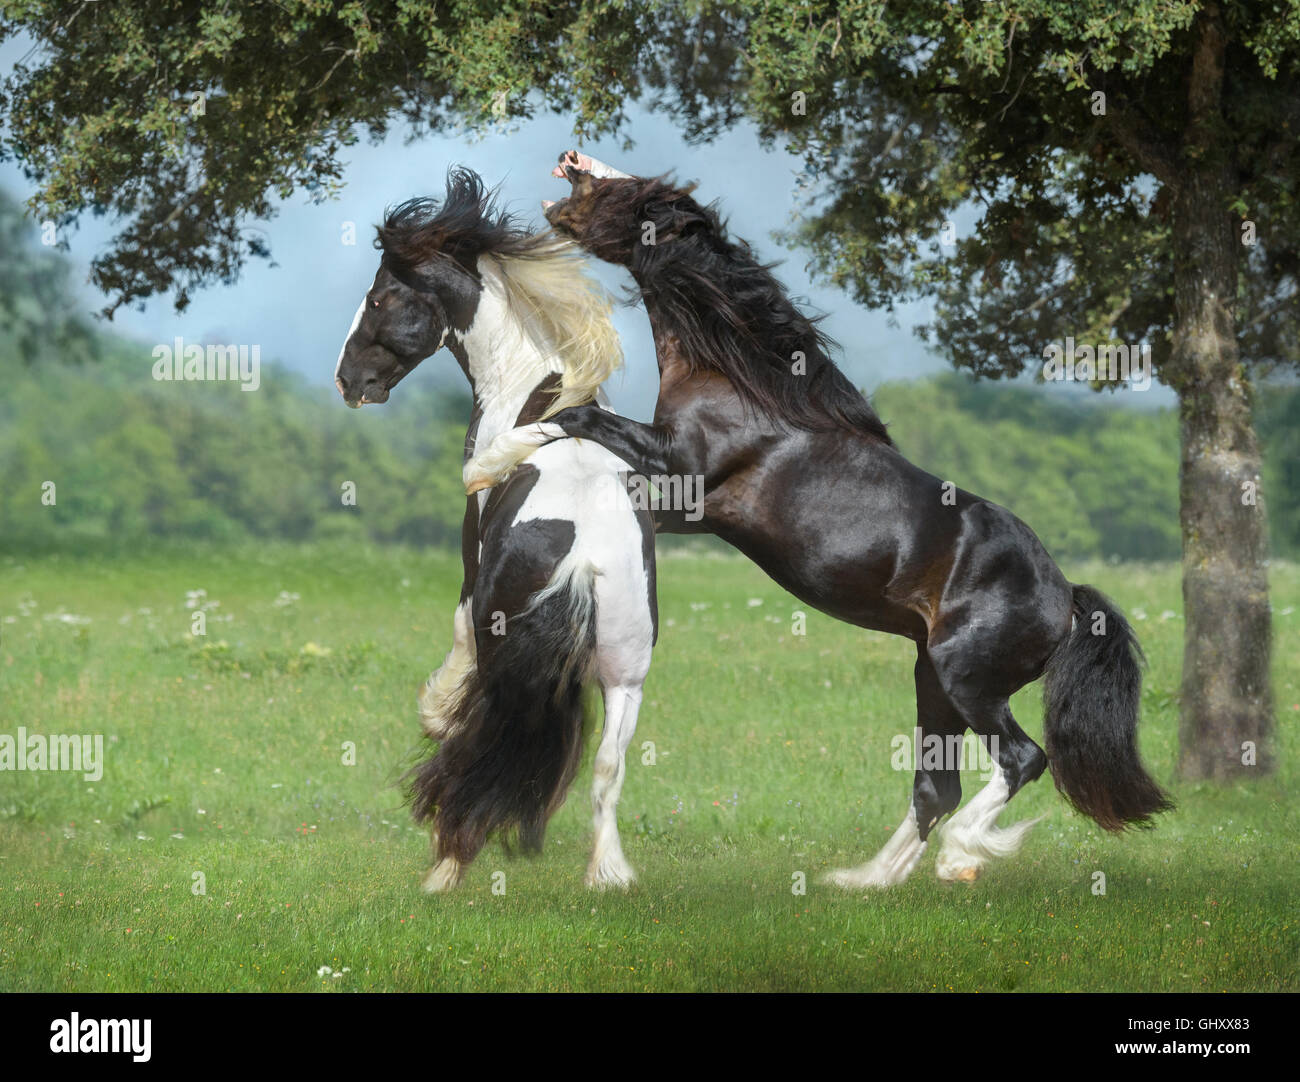 4 Year Old Gypsy Vanner Horse Stallions Roughouse And Play